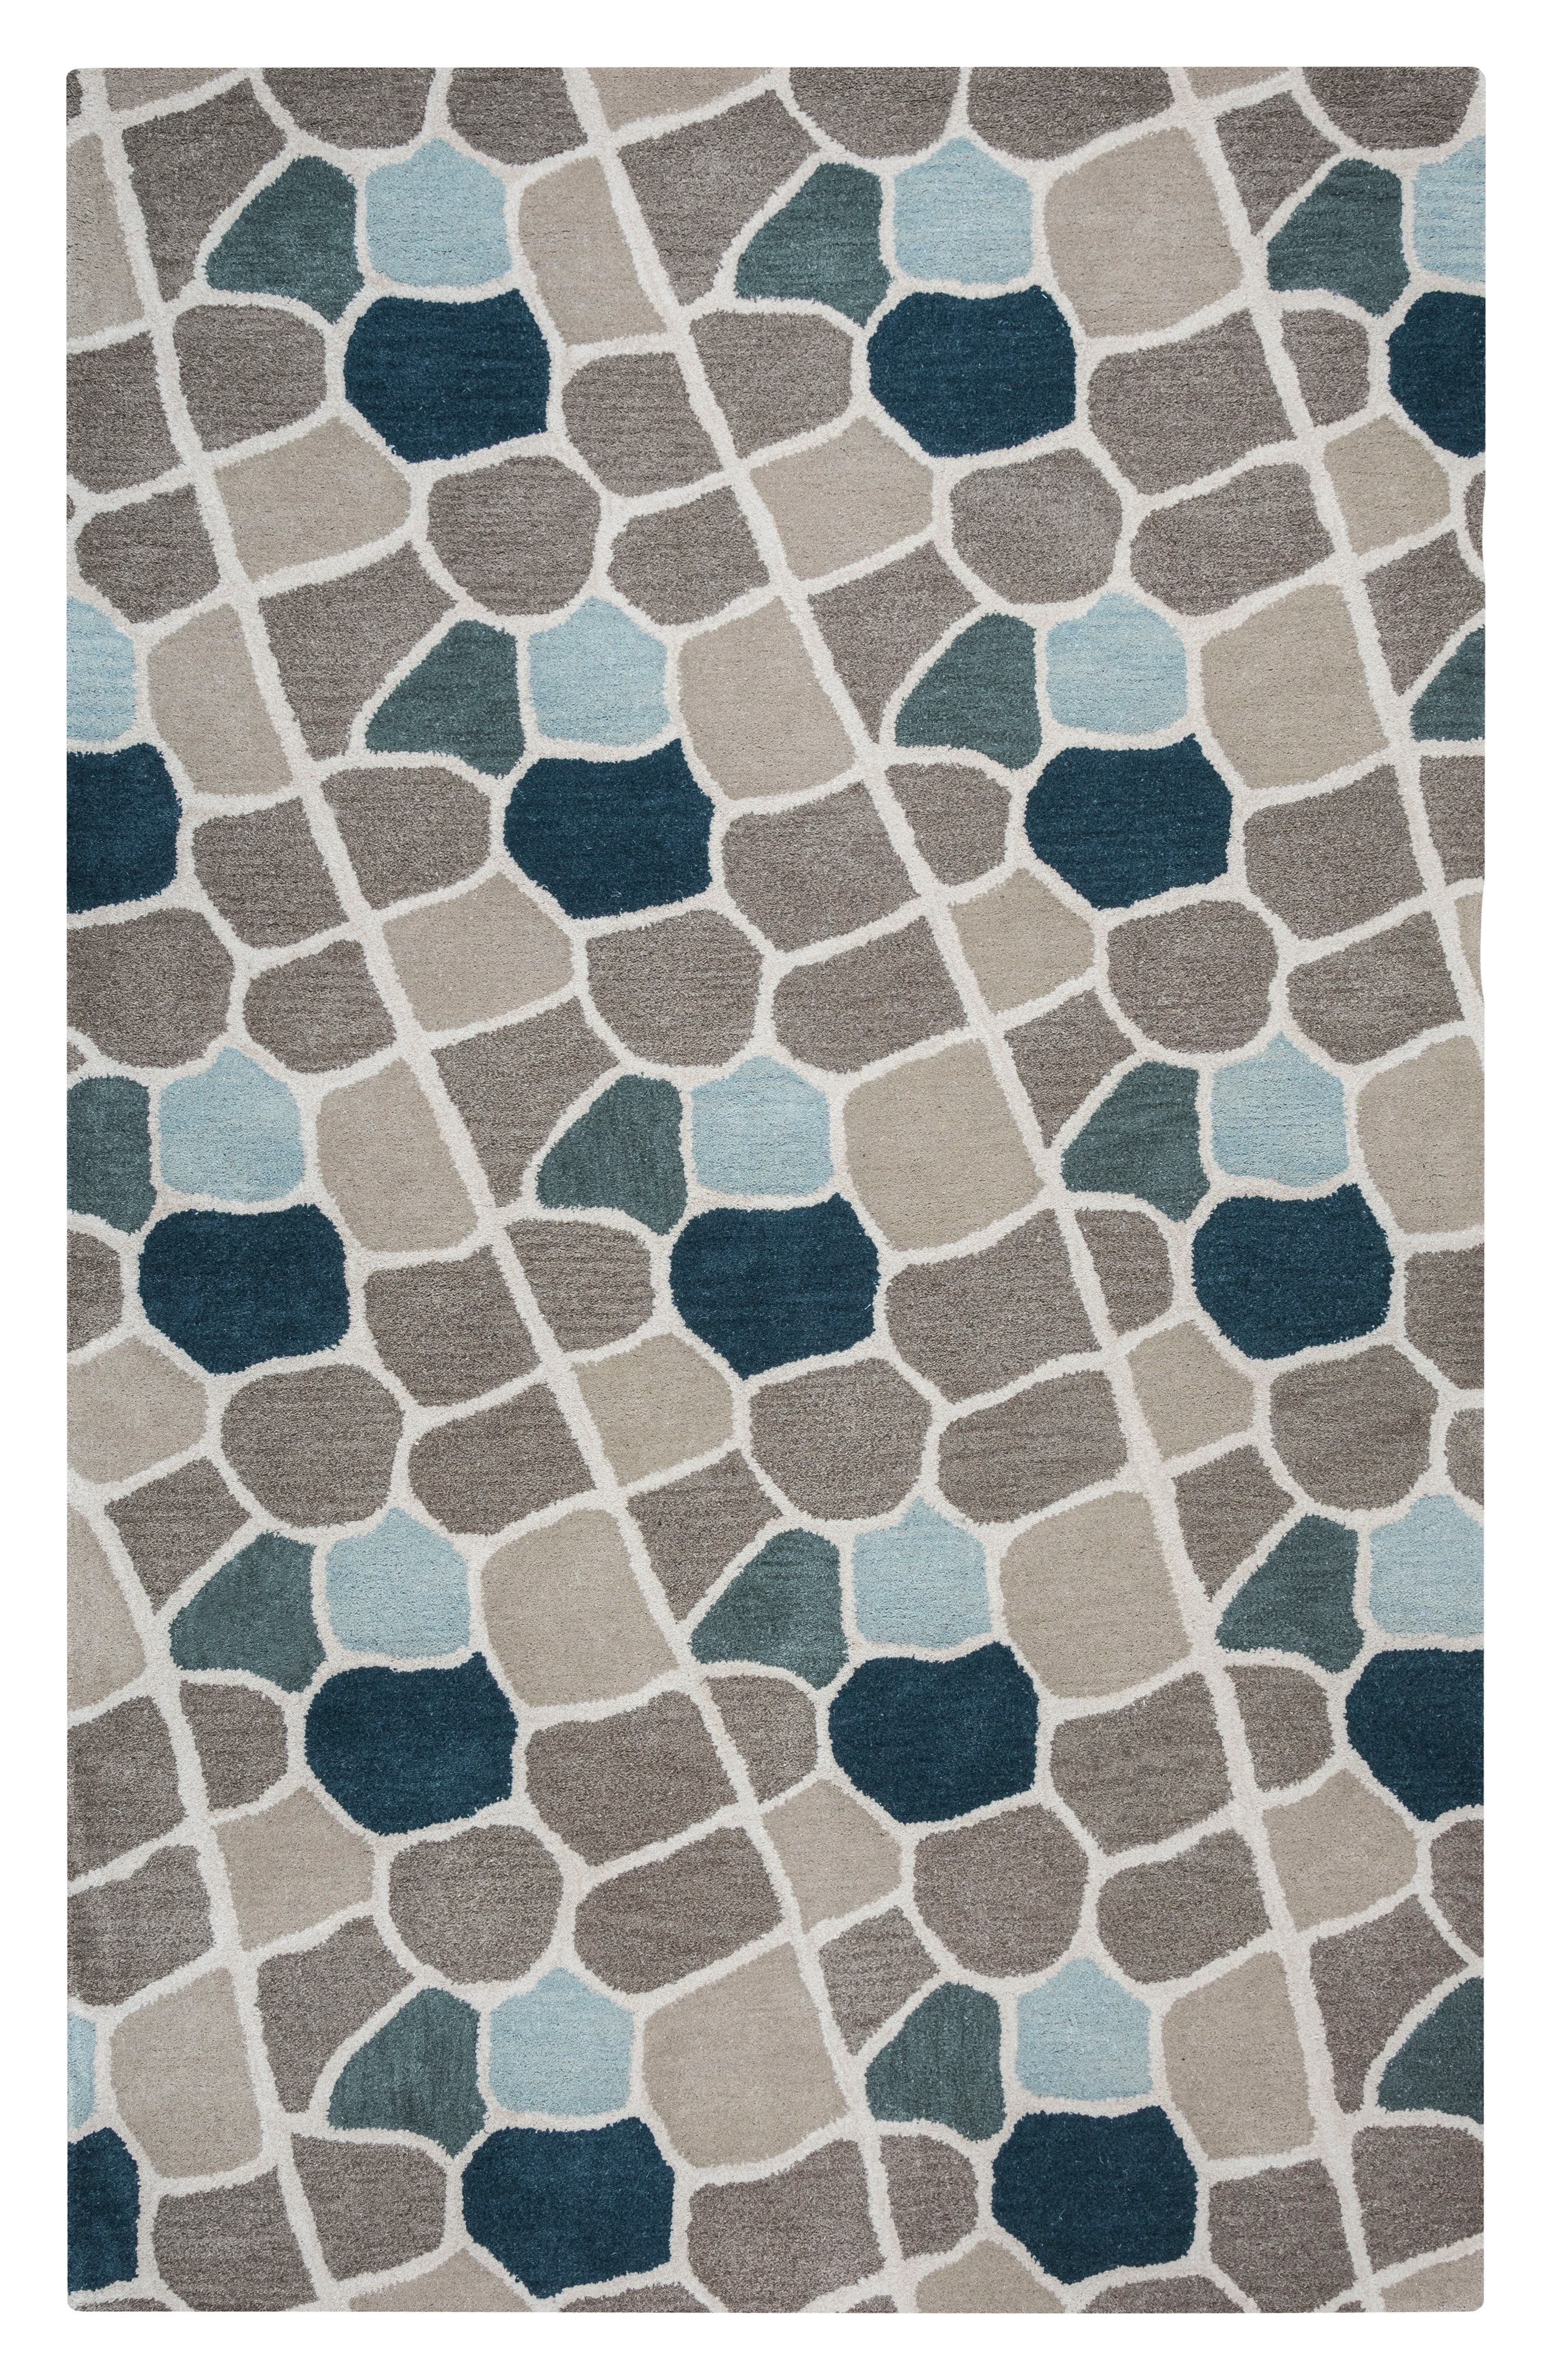 Cobble Geo Hand Tufted Wool Area Rug,                             Main thumbnail 1, color,                             020